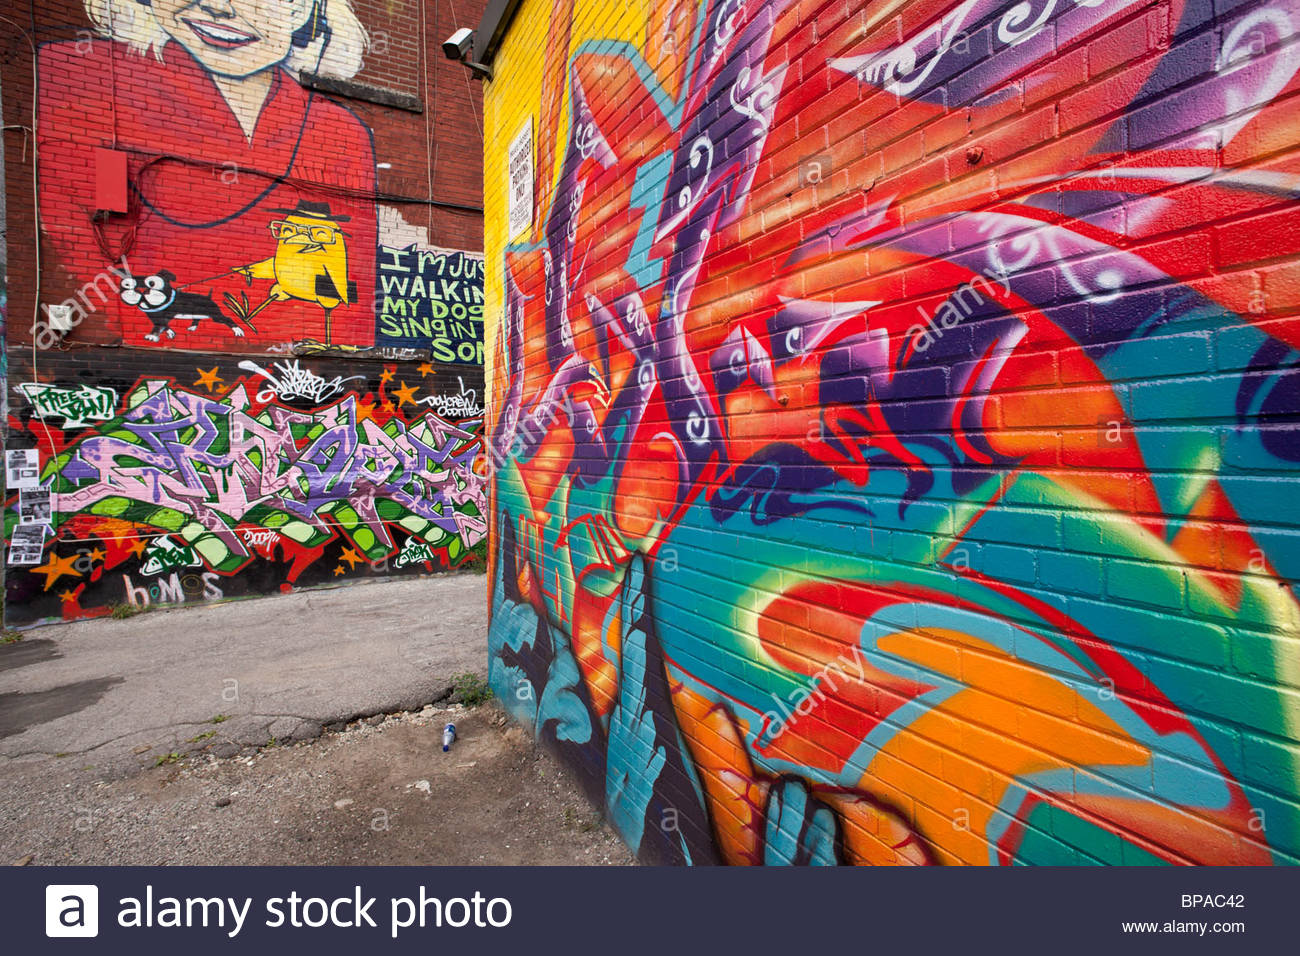 Graffiti wall toronto downtown -  Graffiti On A Wall In A Back Alley Of The Fashion District Near Queen West In